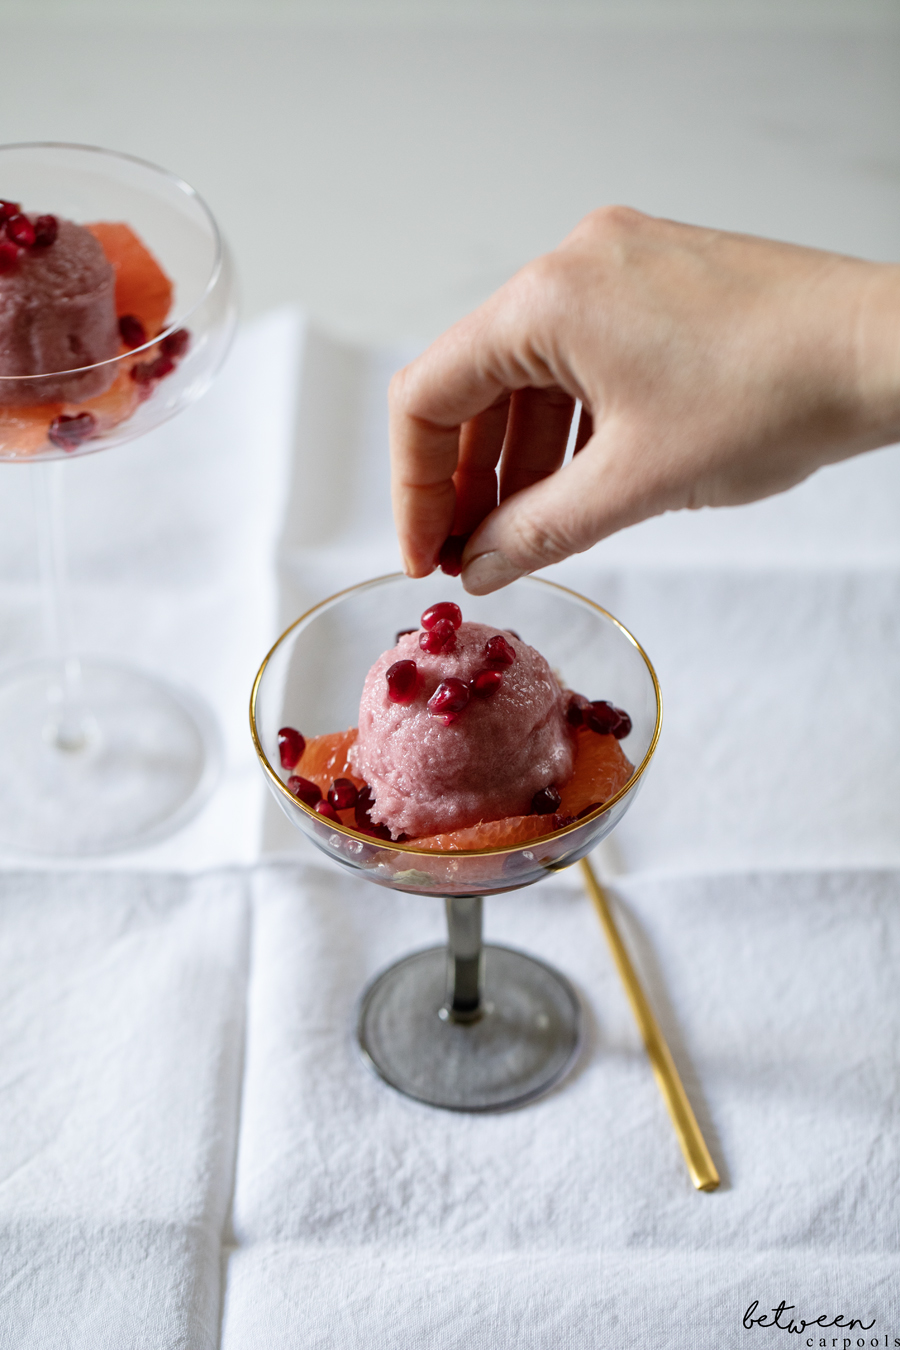 This Is the Dessert My Family Enjoyed the Most. Grapefruit + Pomegranate + Sorbet. You can't go wrong with this light and refreshing way to end a Yom Tov meal.